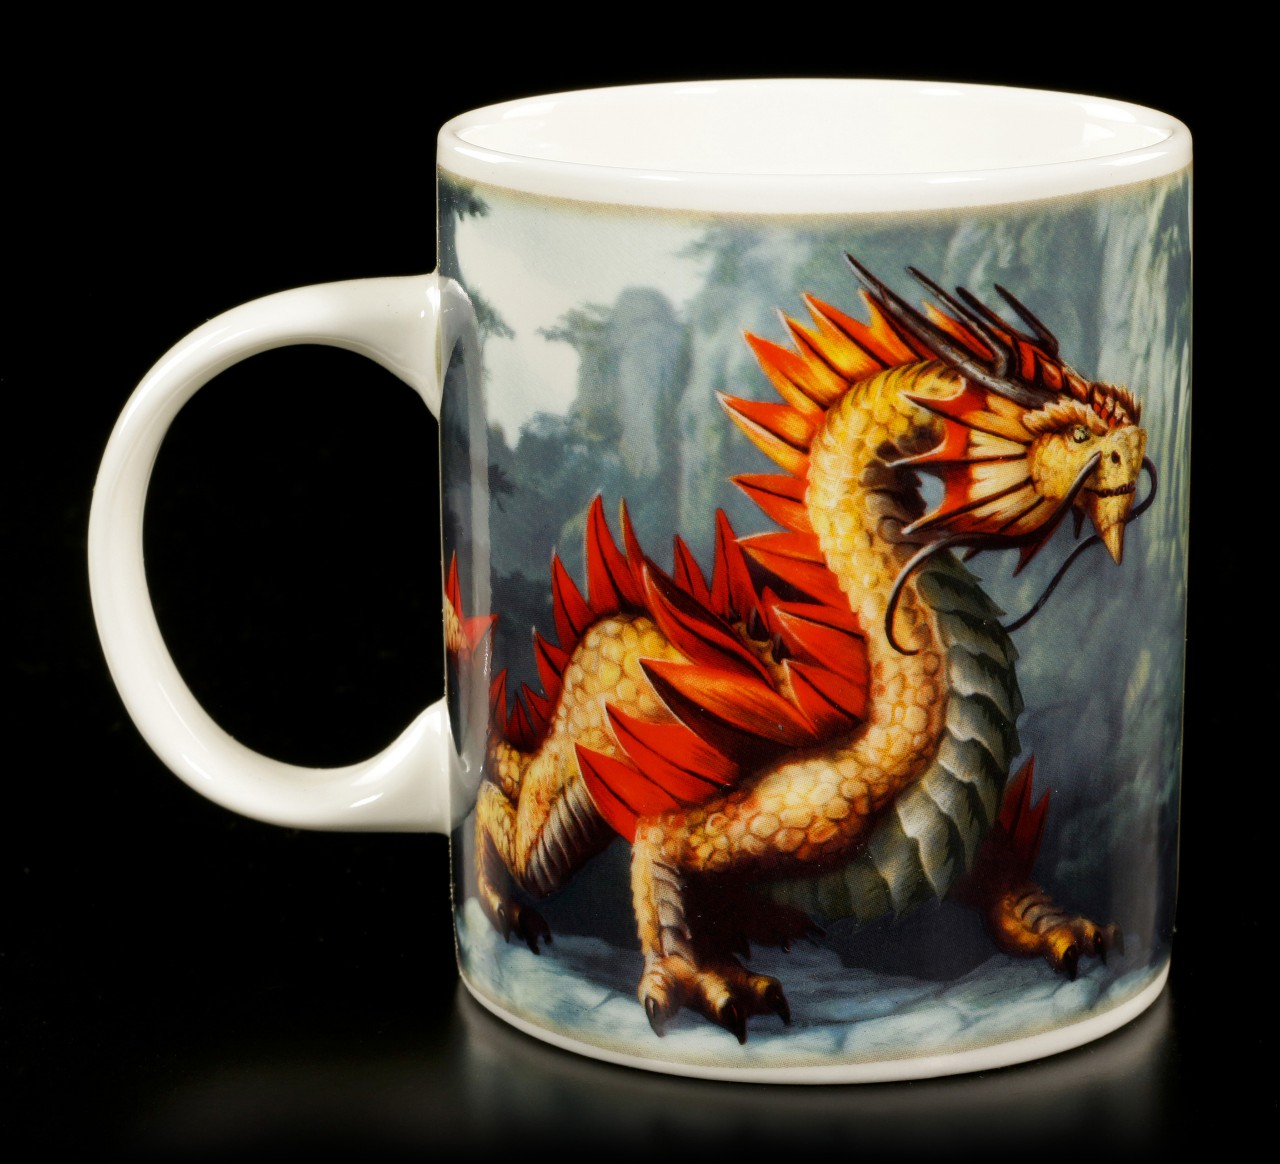 Age of Dragons Mug - Golden Mountain Dragon